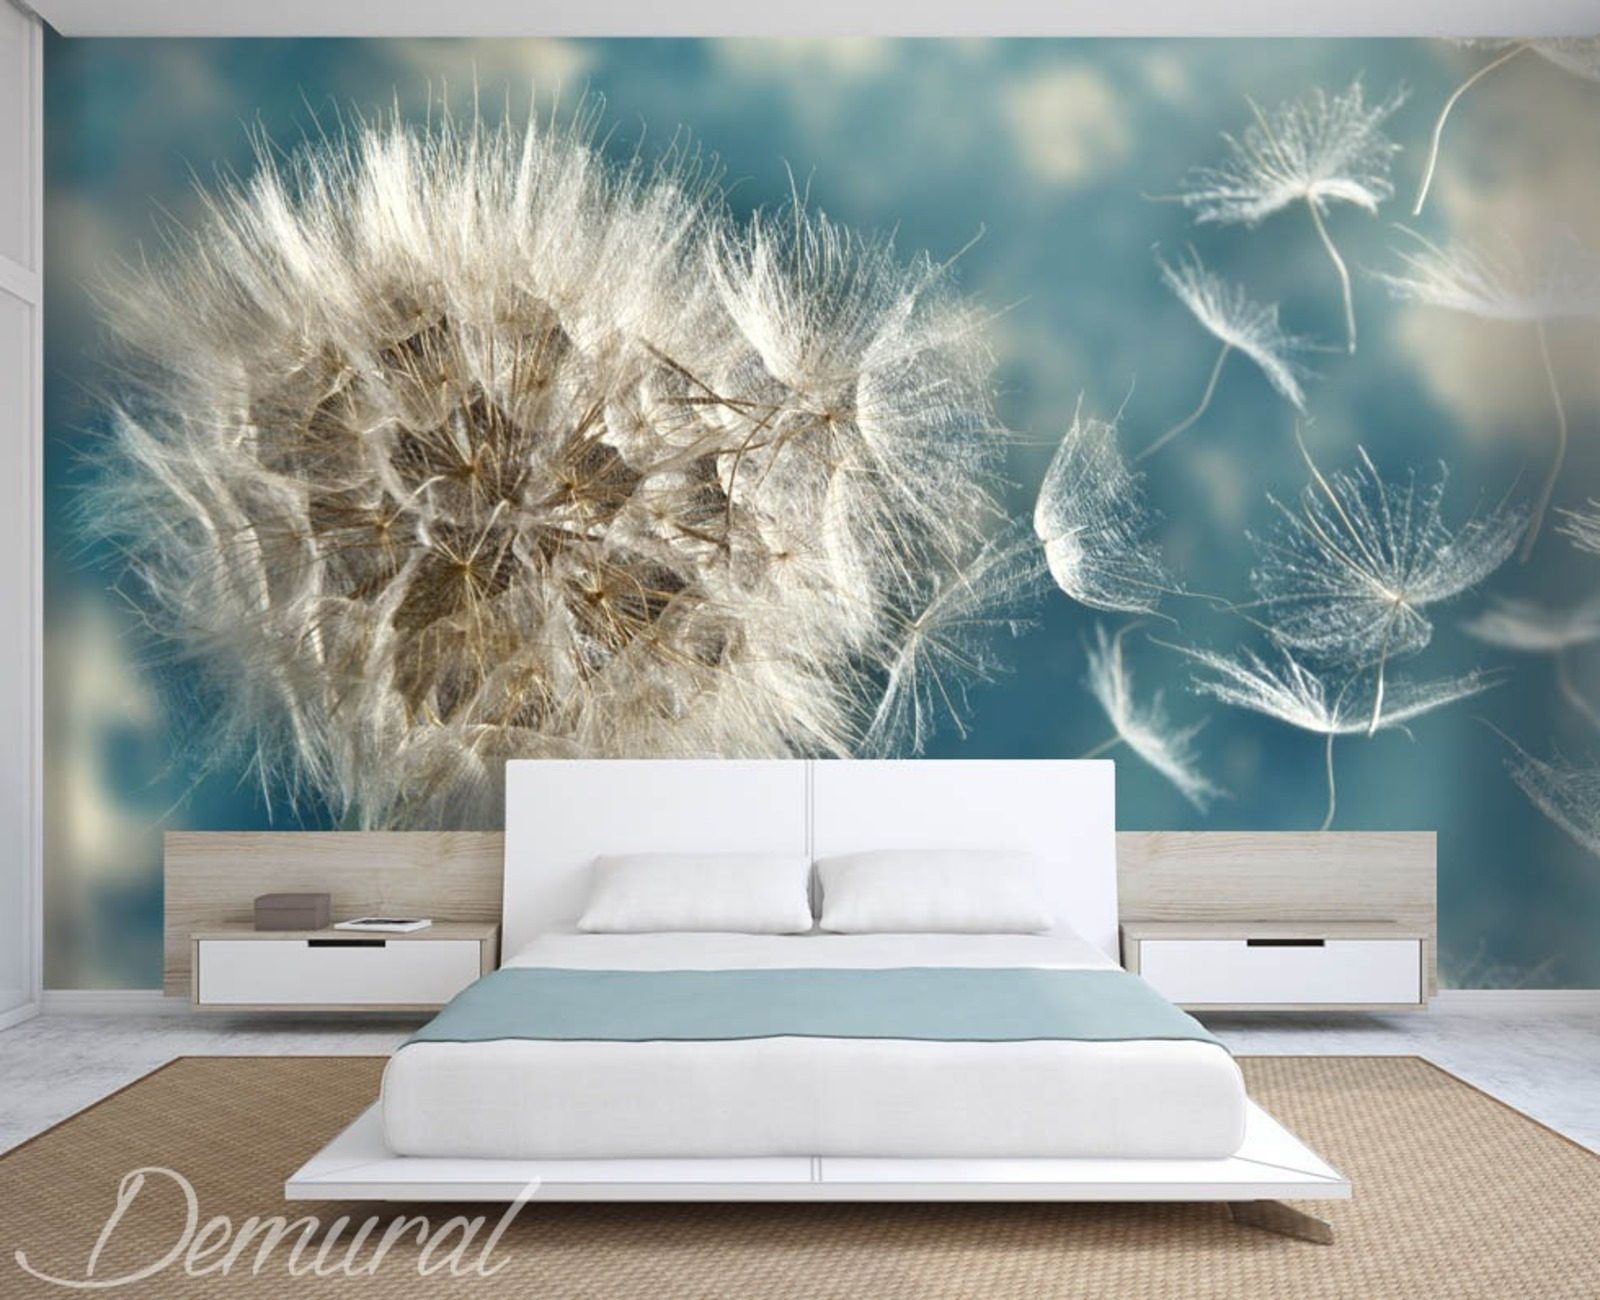 pusteblumen die in windrichtung geworfen werden fototapete mit pusteblume fototapeten demural. Black Bedroom Furniture Sets. Home Design Ideas